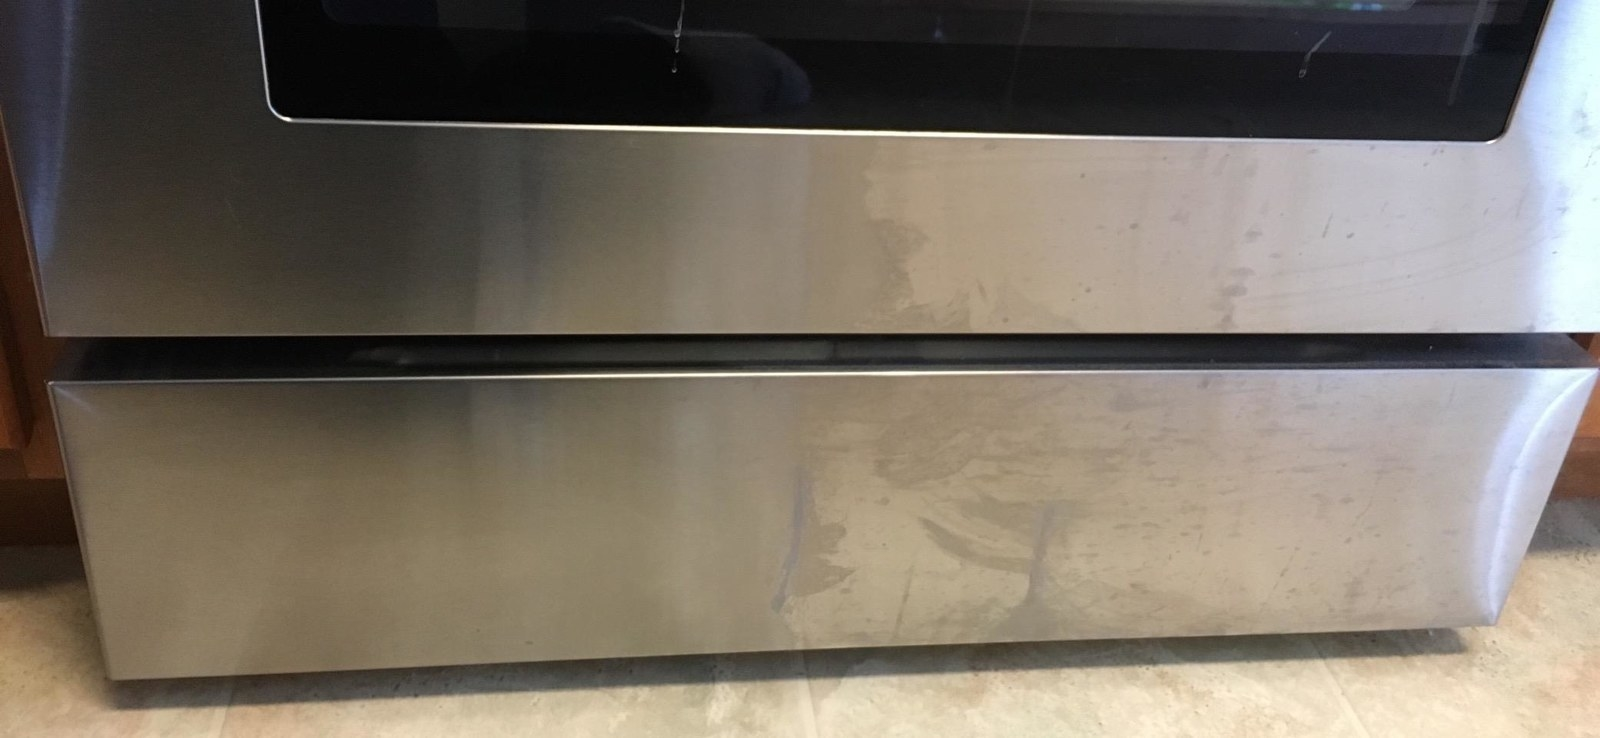 Reviewer photo of a stainless steel oven partially polished by the cleaner. The polished side is spotless, while the unpolished side shows smudges